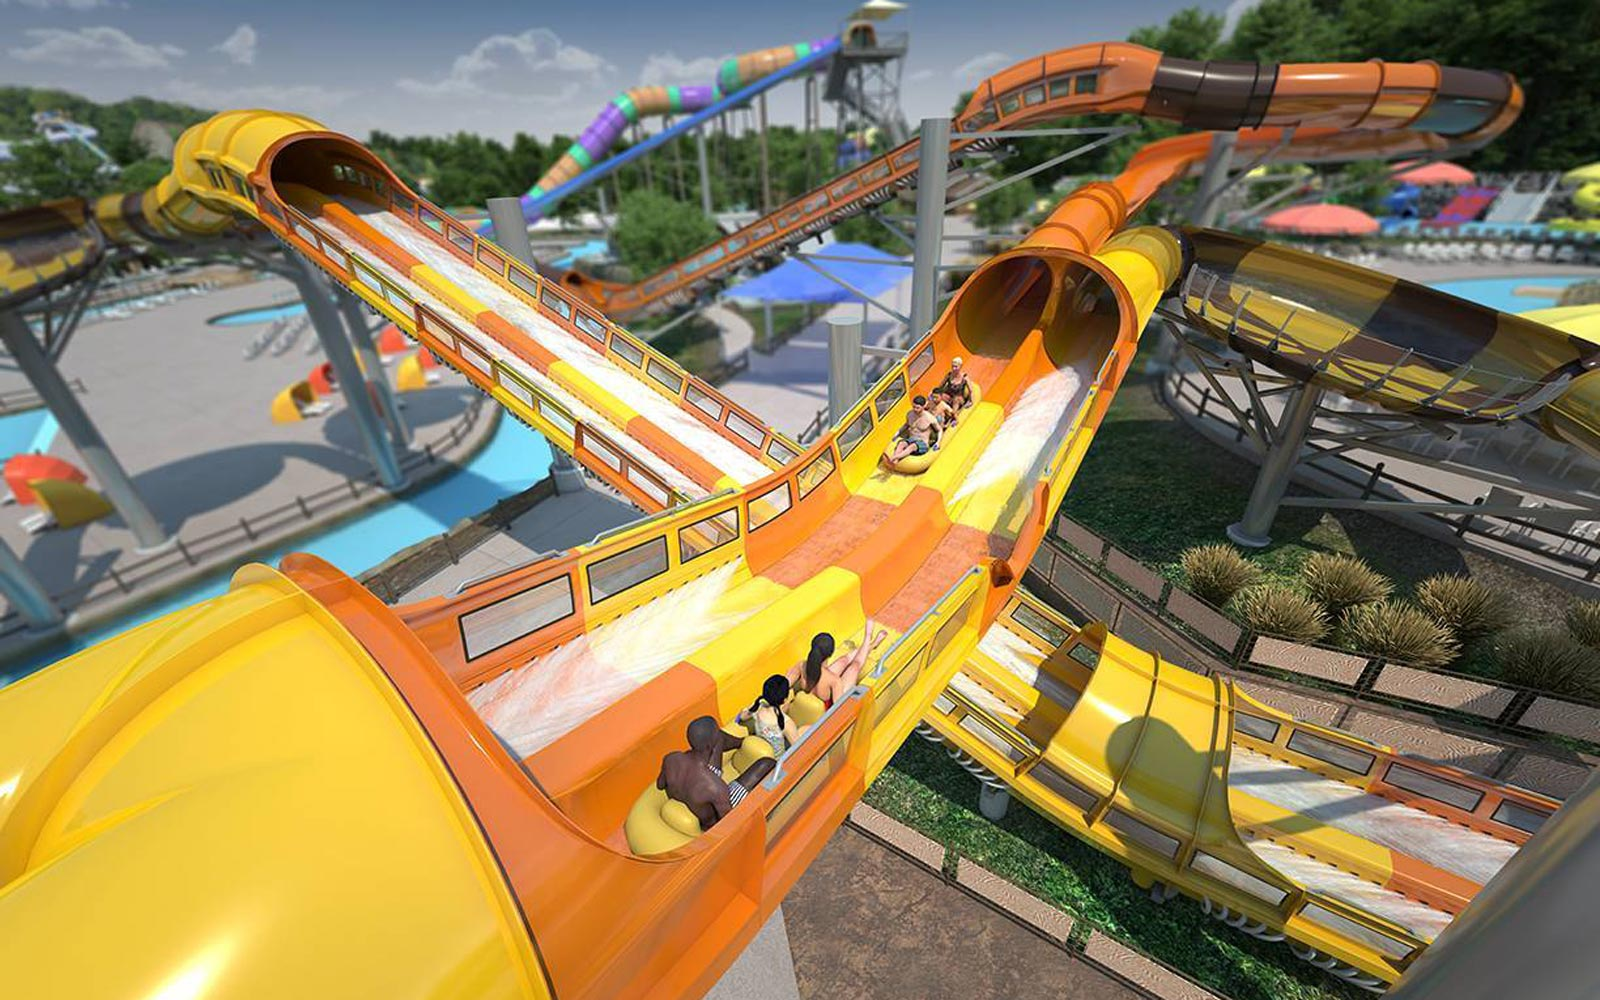 This First-of-its-kind Ride Is an Epic Roller Coaster Meets Waterslide Mashup